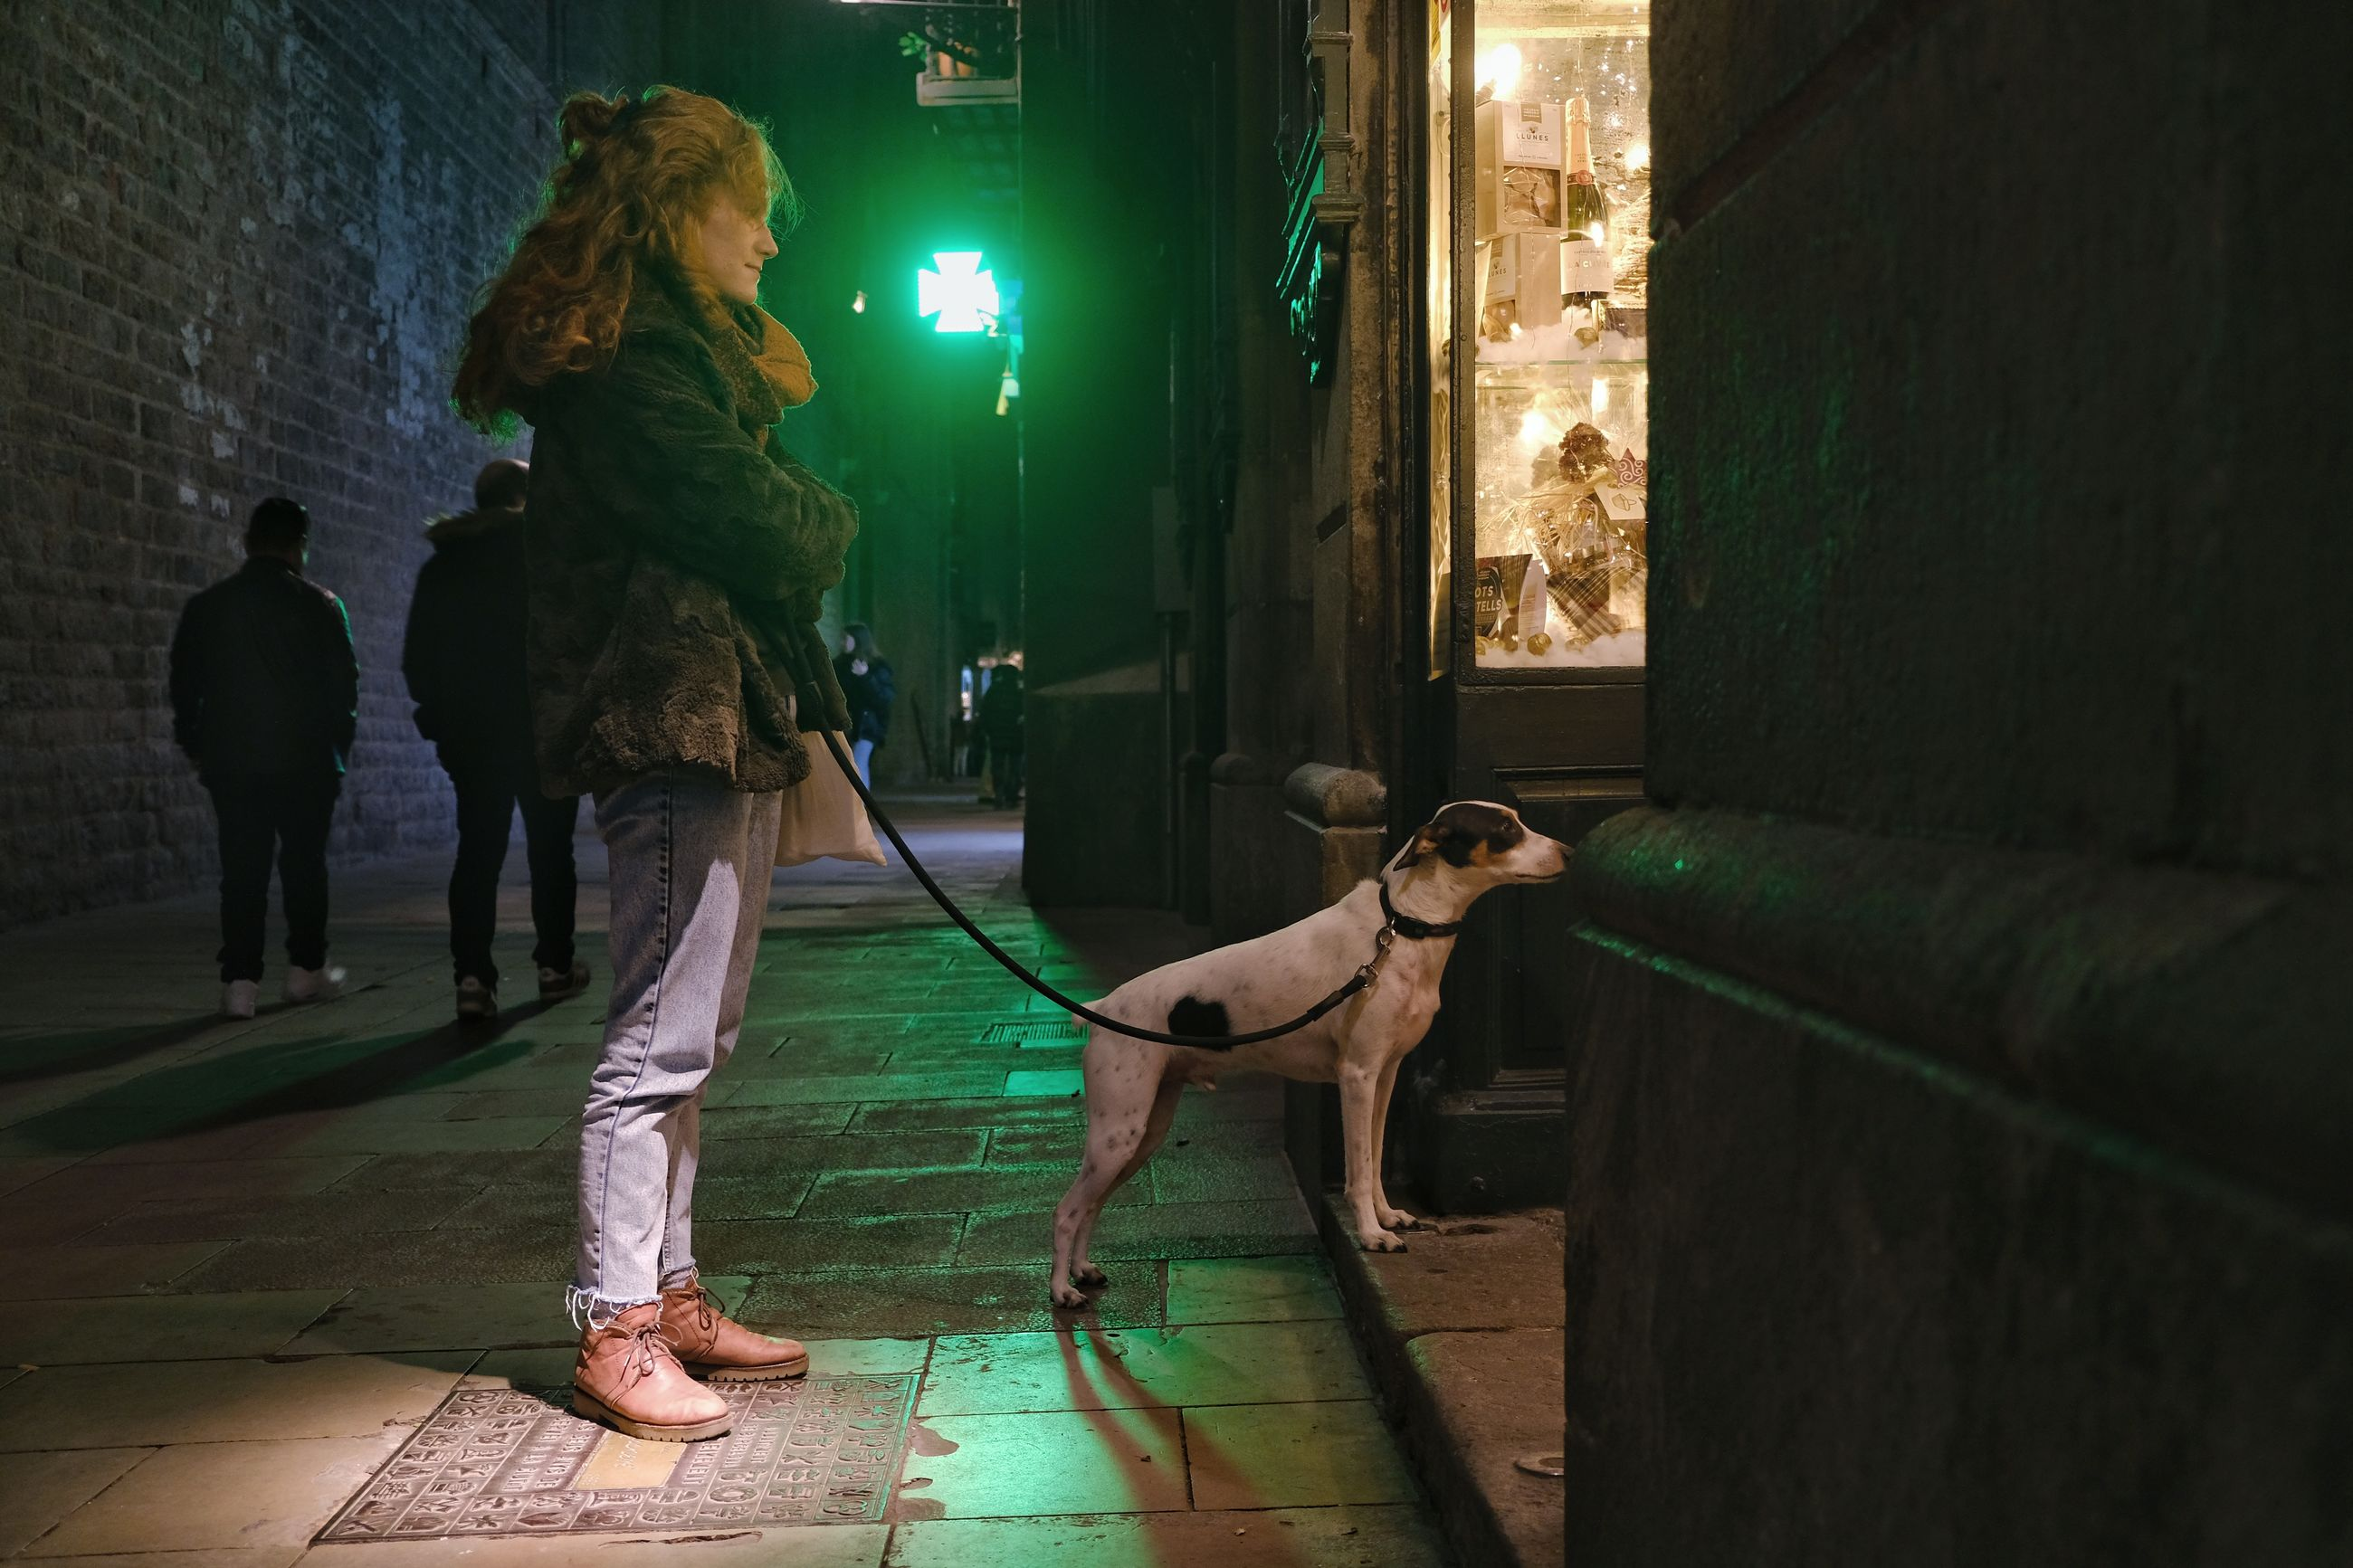 mammal, domestic animals, domestic, pets, one animal, dog, canine, real people, full length, leash, pet leash, architecture, vertebrate, people, casual clothing, women, pet owner, night